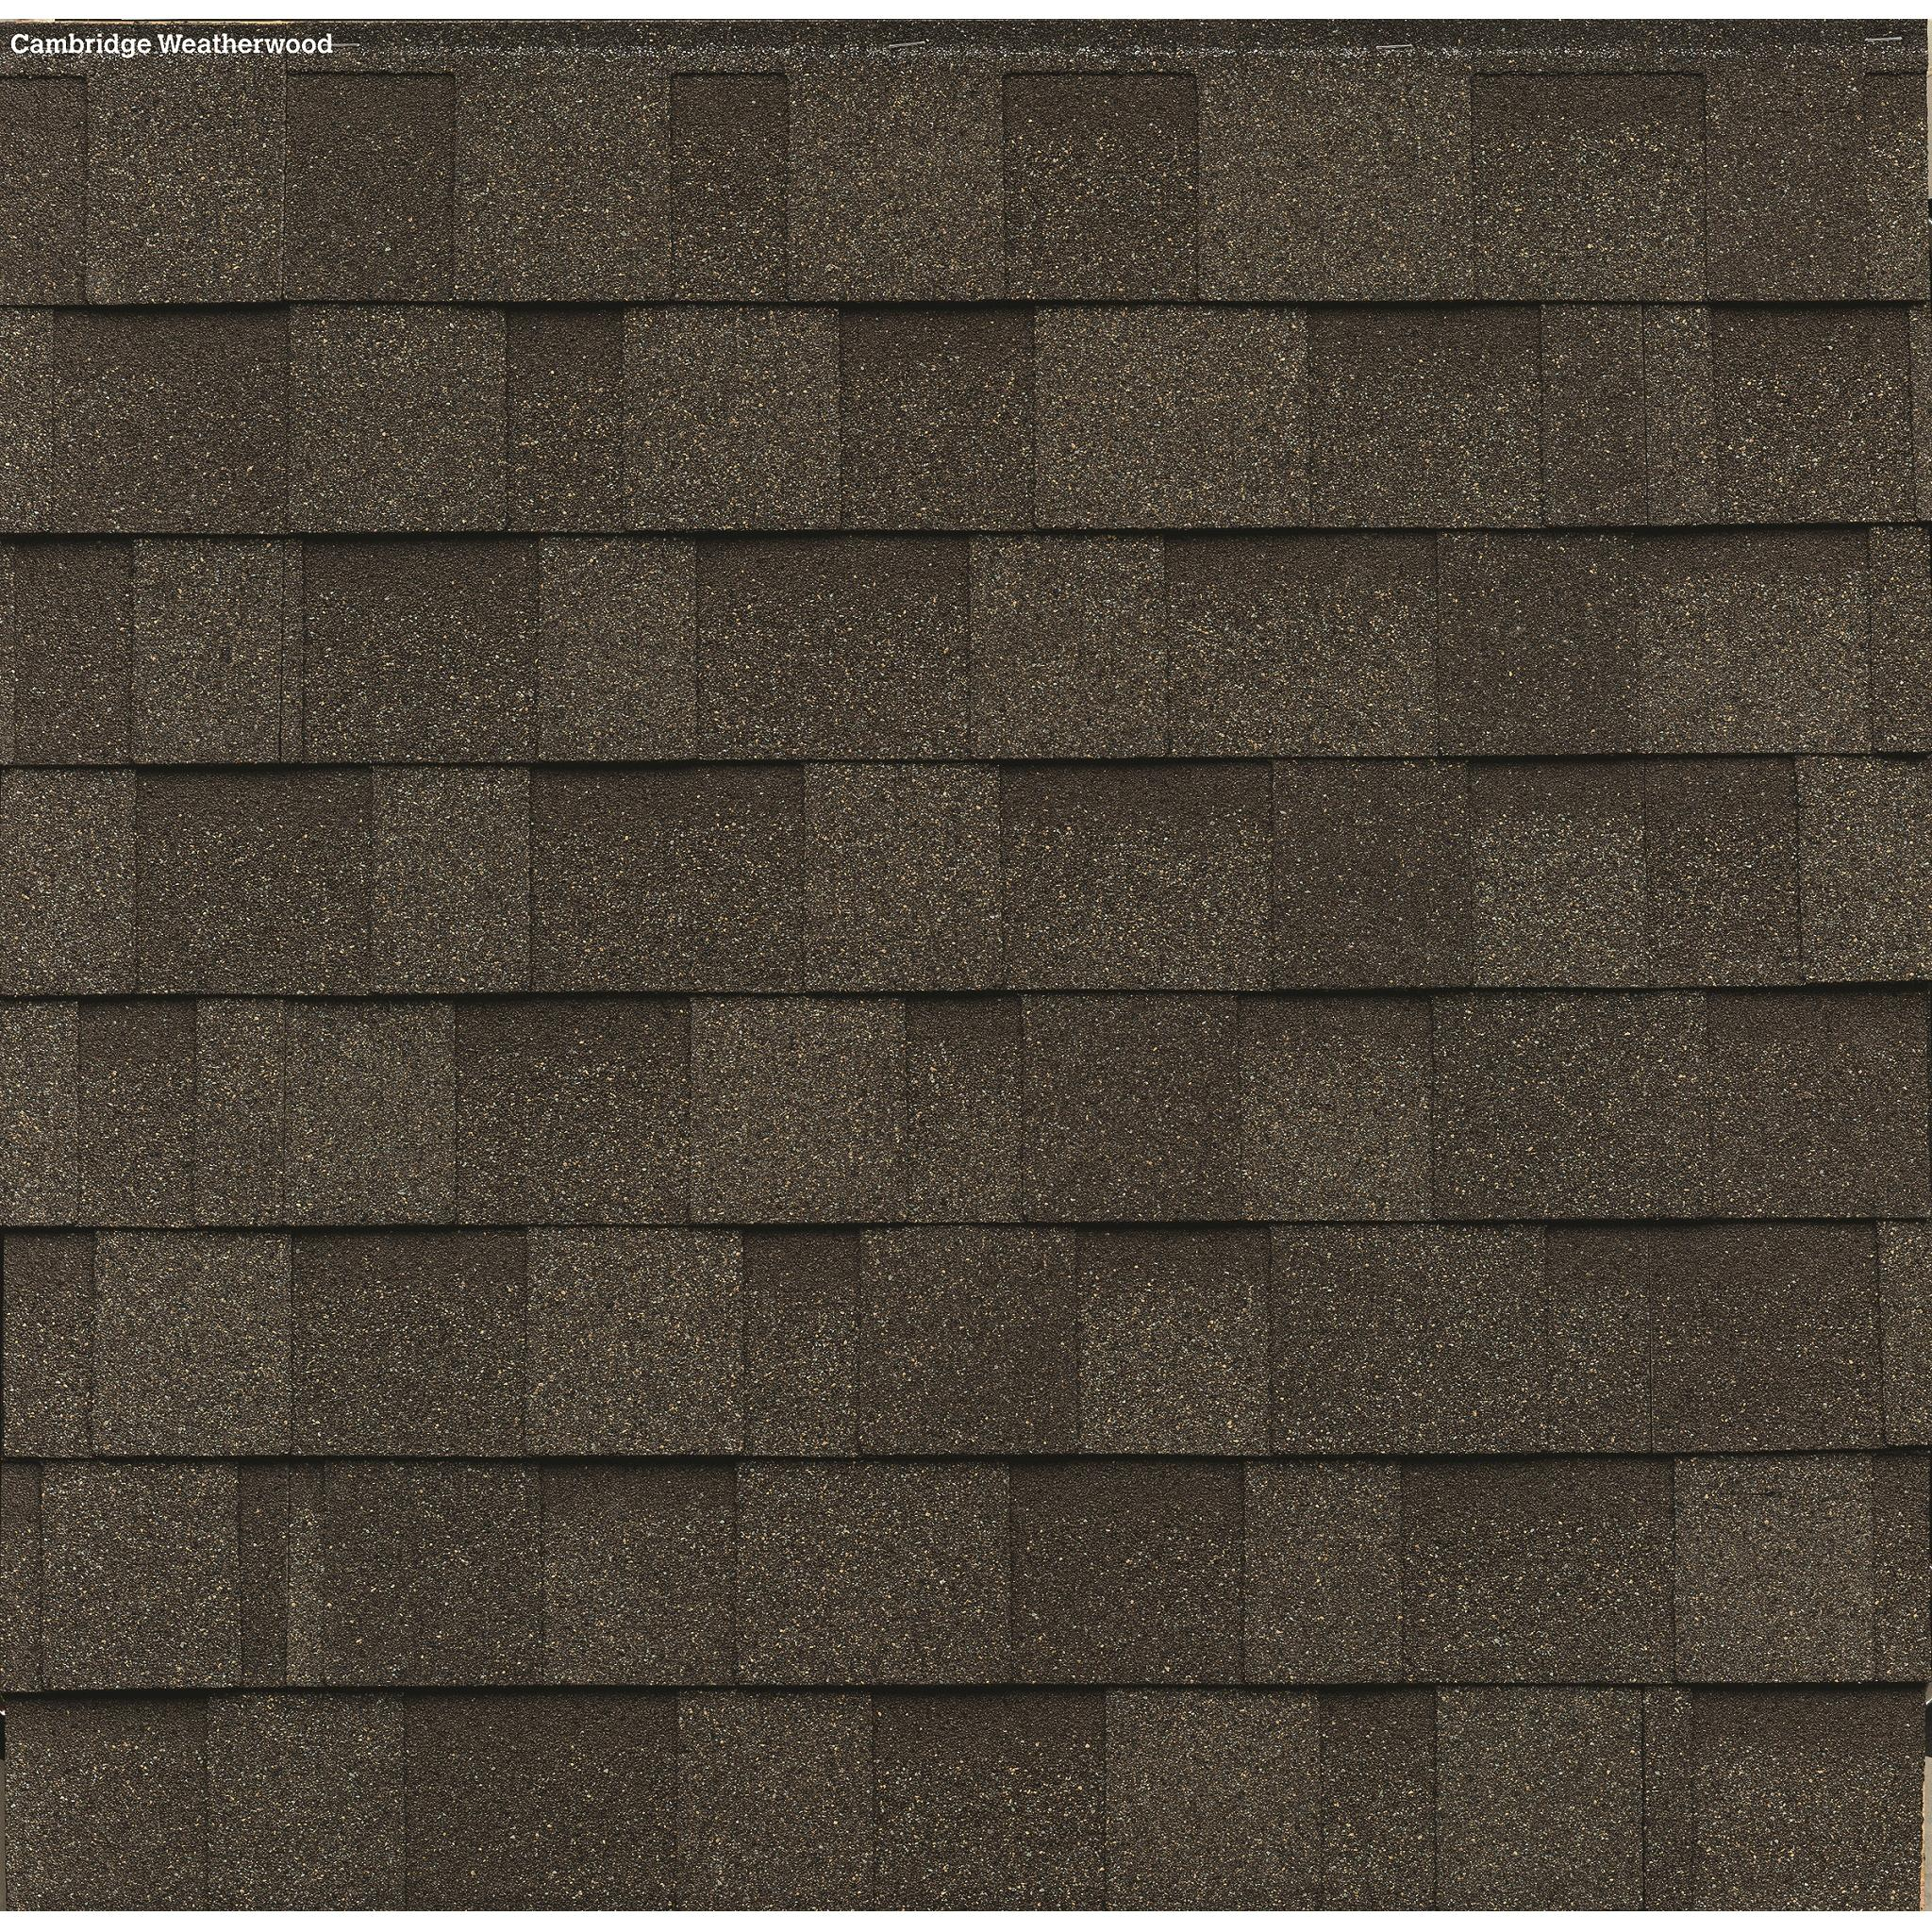 Crc Biltmore Shingles Biltmore Weatherwood Eurotech Roofing Supply